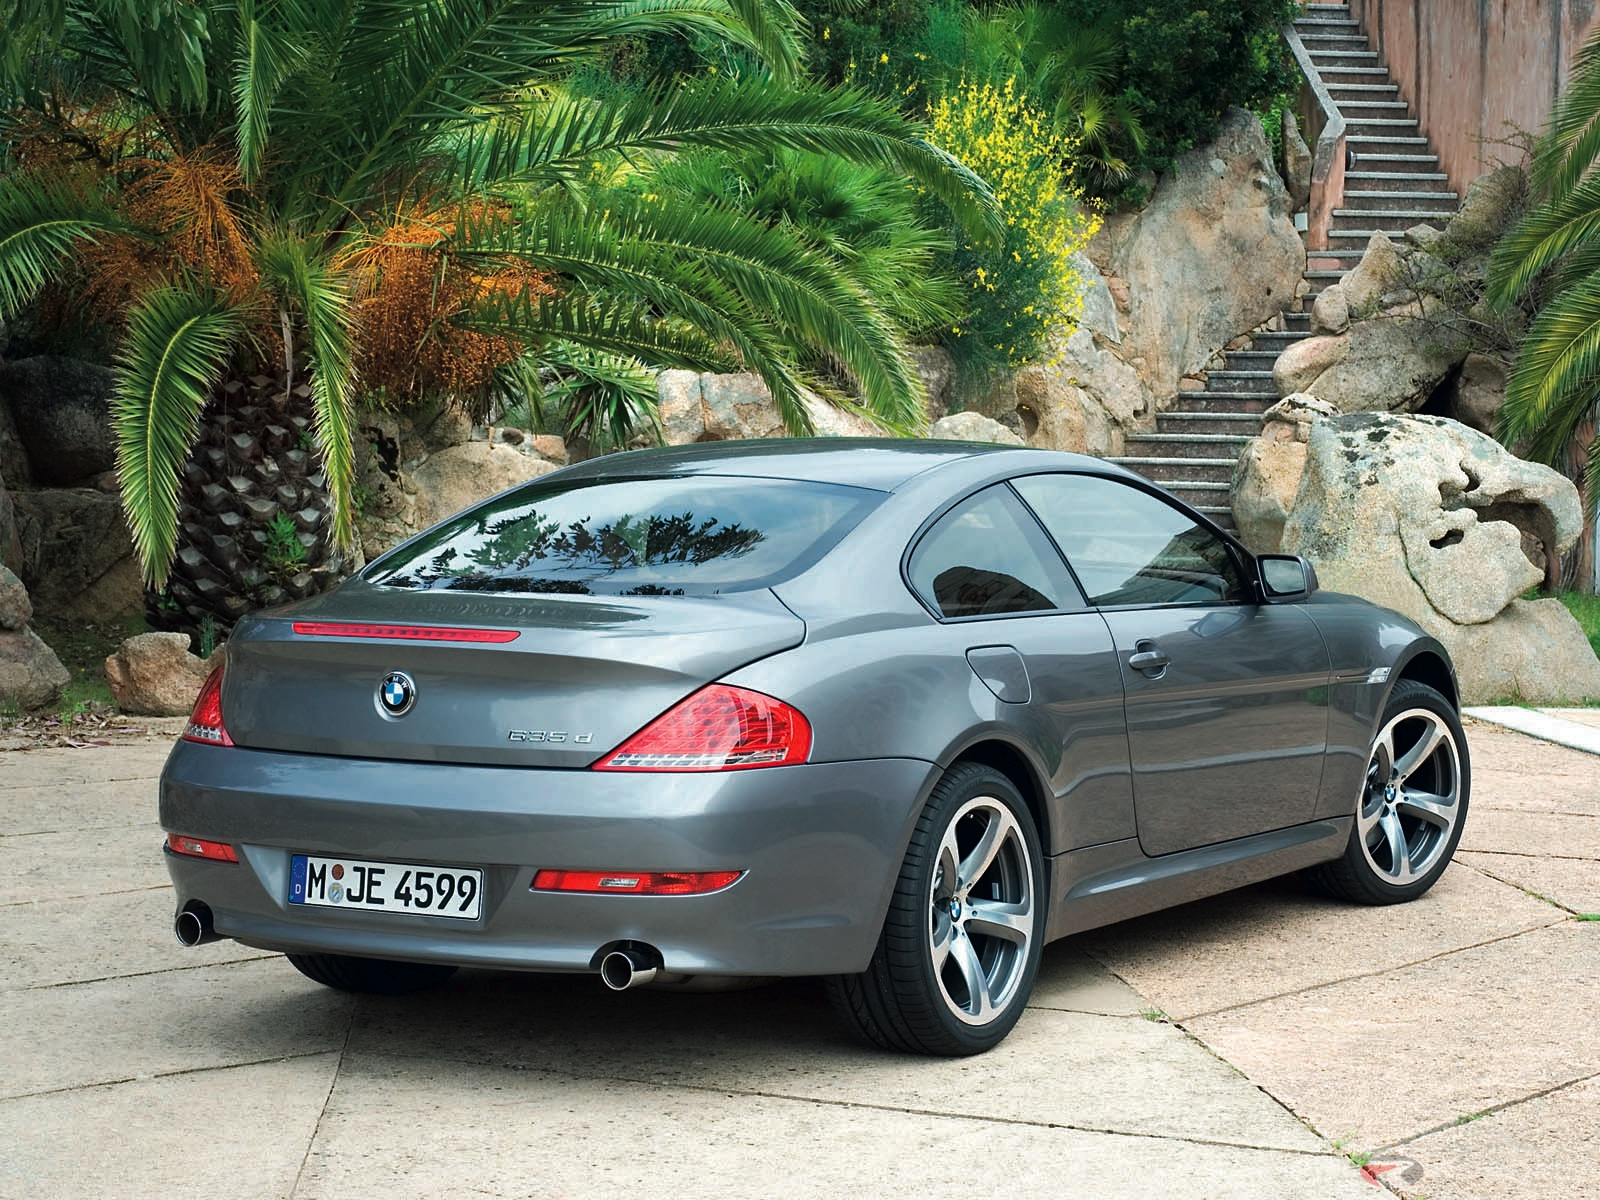 My Car Bmw 650i Cars Styles Wallpaper With All Color